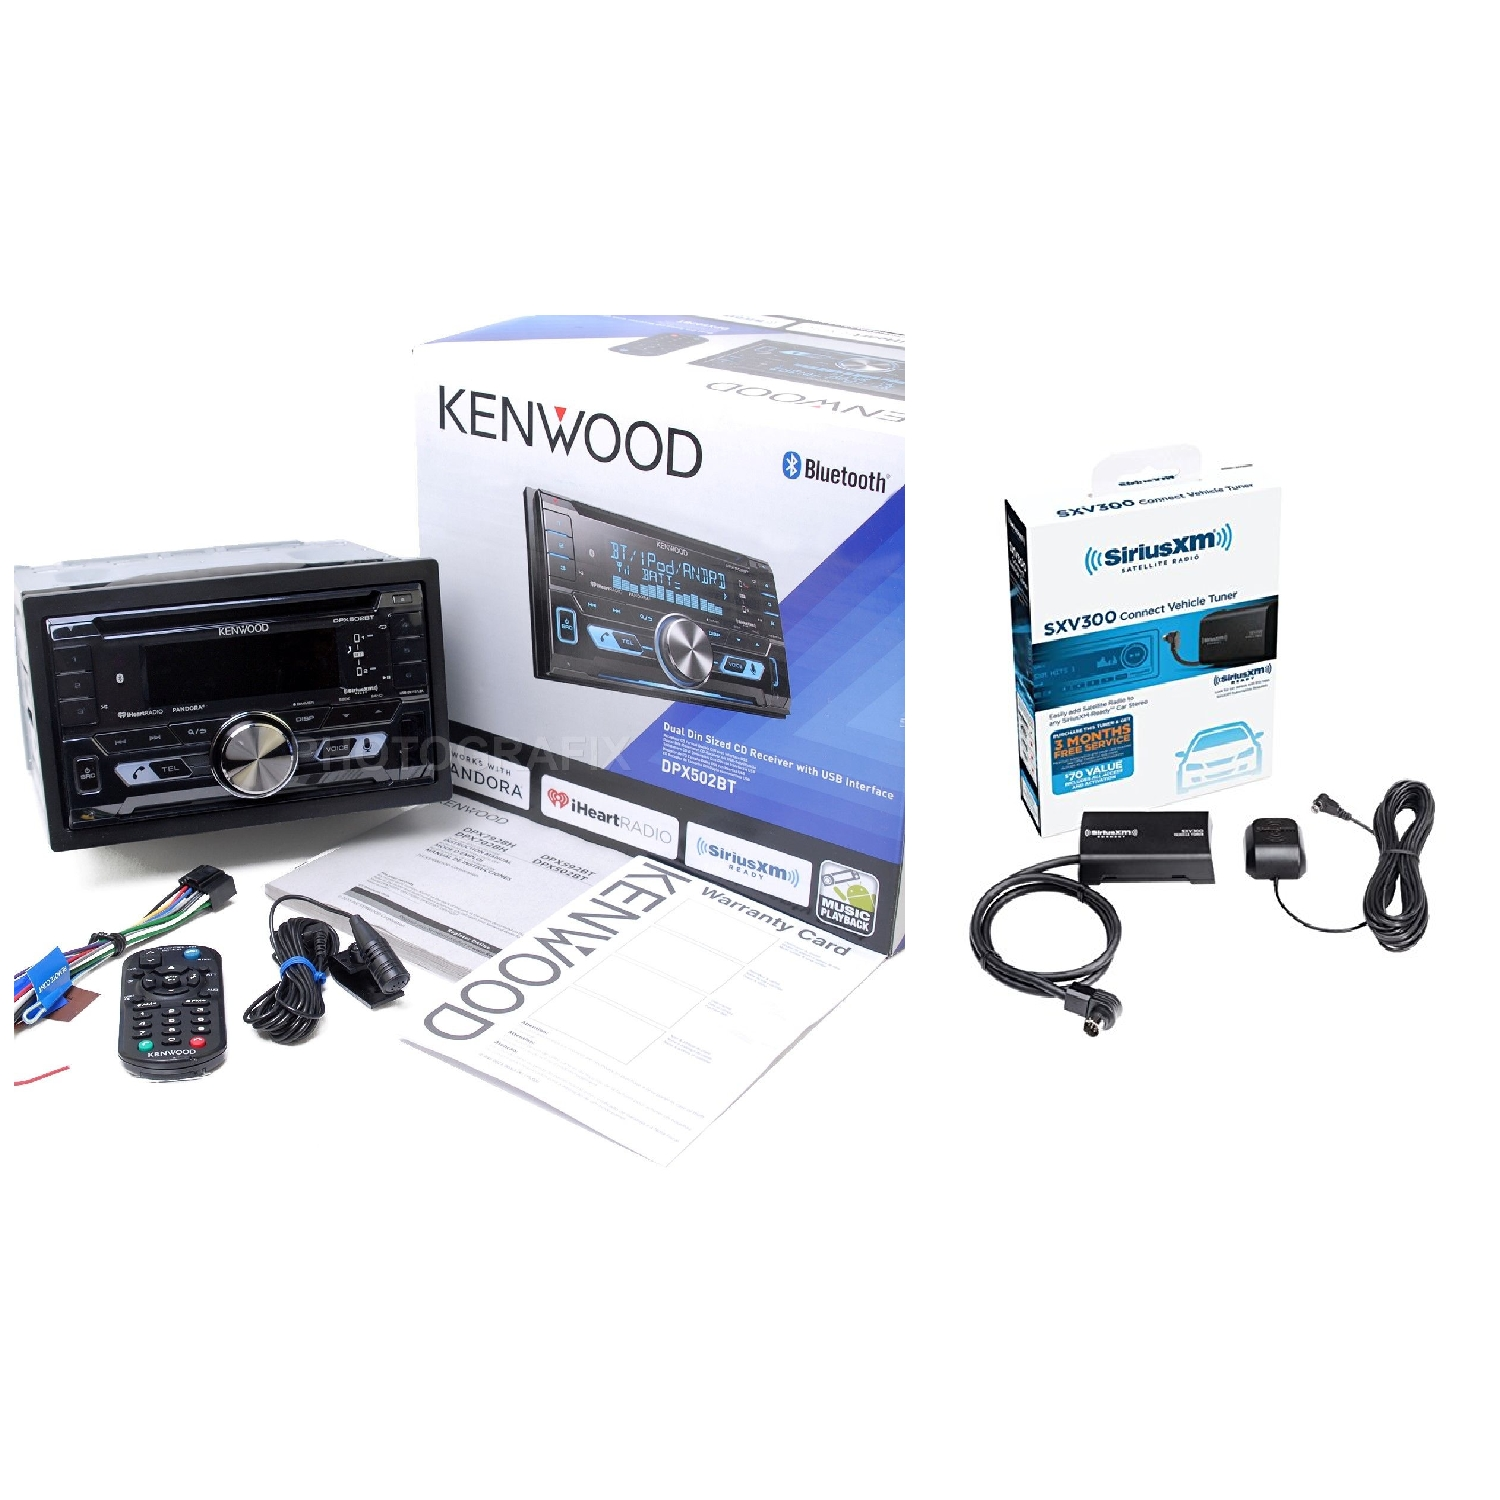 small resolution of kenwood kdc 252u mp3 usb cd player in dash receiver for sale online kenwood kdc 252u wiring diagram car stereo